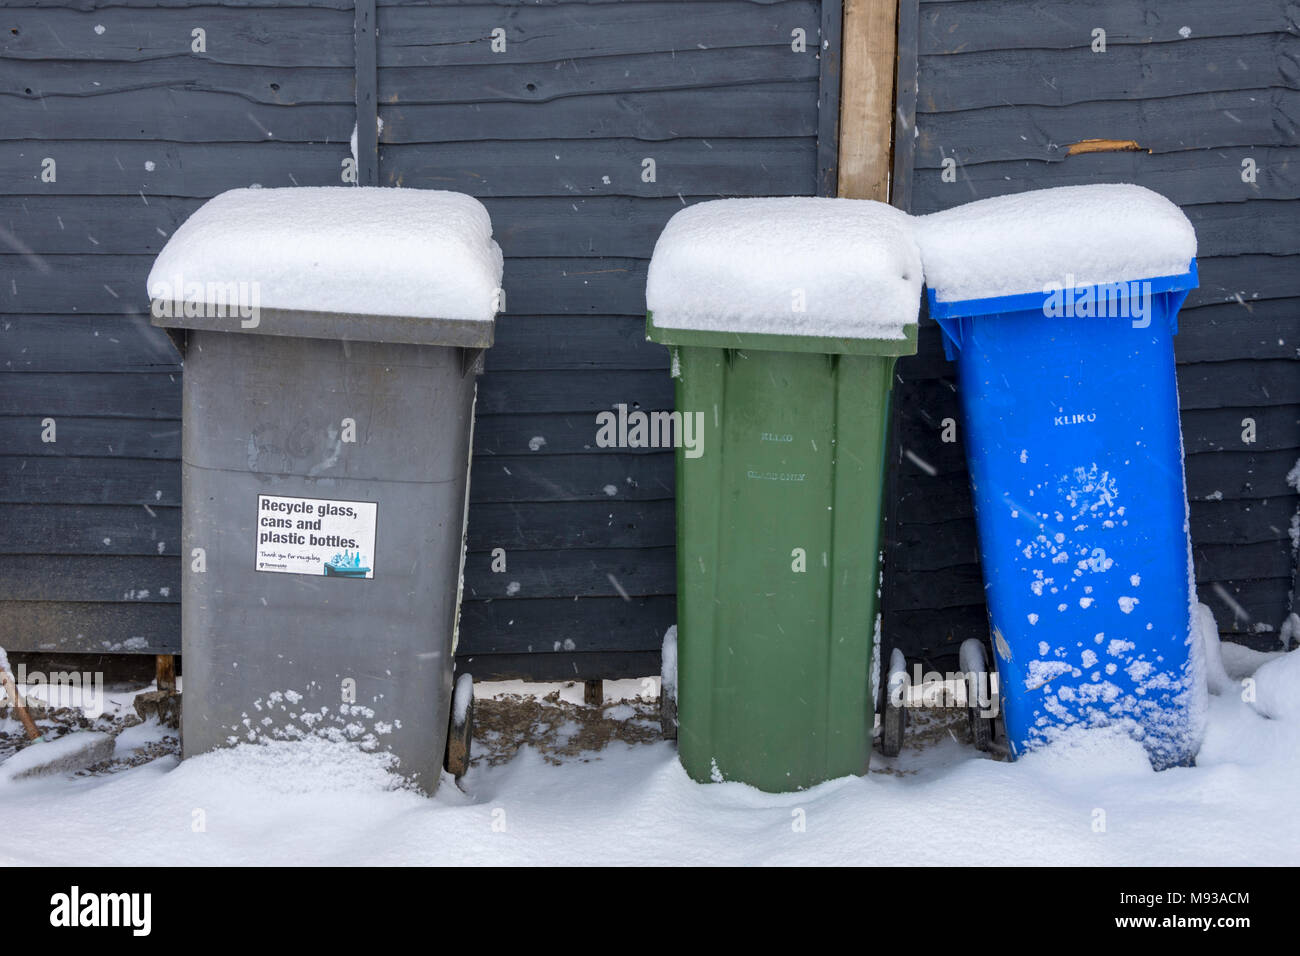 Snow covered wheelie bins in a suburban street, Tameside, Manchester, England, UK - Stock Image